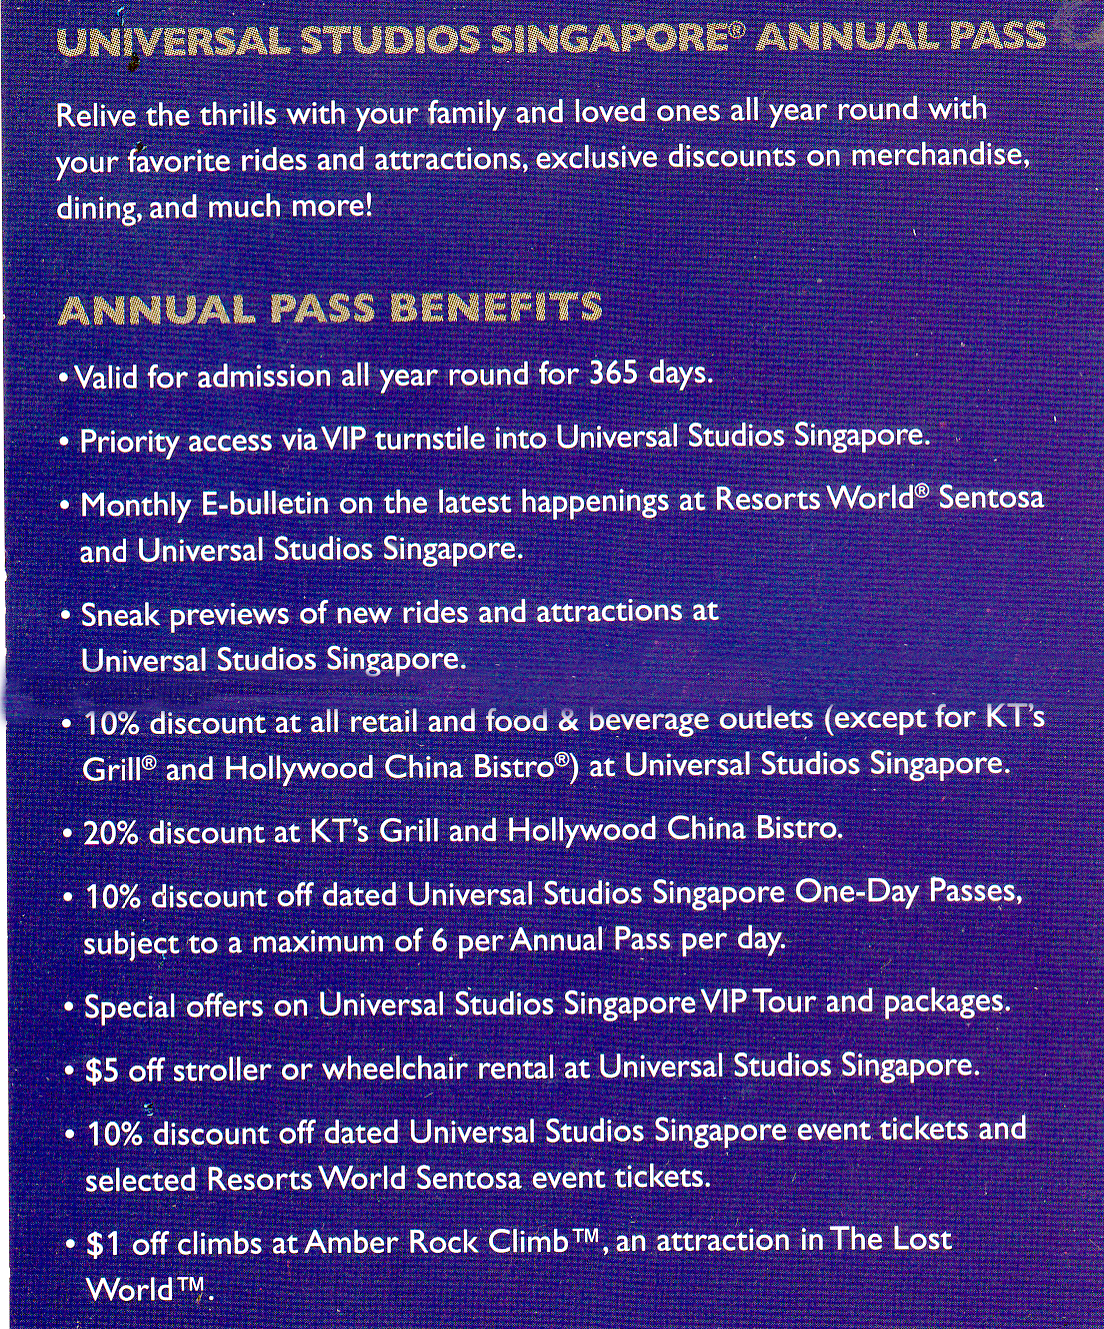 Universal Annual Pass Promo Code - jayslowlemangbud.ga CODES Get Deal Universal Orlando Discounts and Deals - jayslowlemangbud.ga CODES Get Deal Universal Orlando Discounts and Deals. LAST UPDATE: Holders of any Universal Annual Pass, including the Power Annual Pass, get 10% off the gate price of multi-day tickets when purchasing at the front gate.